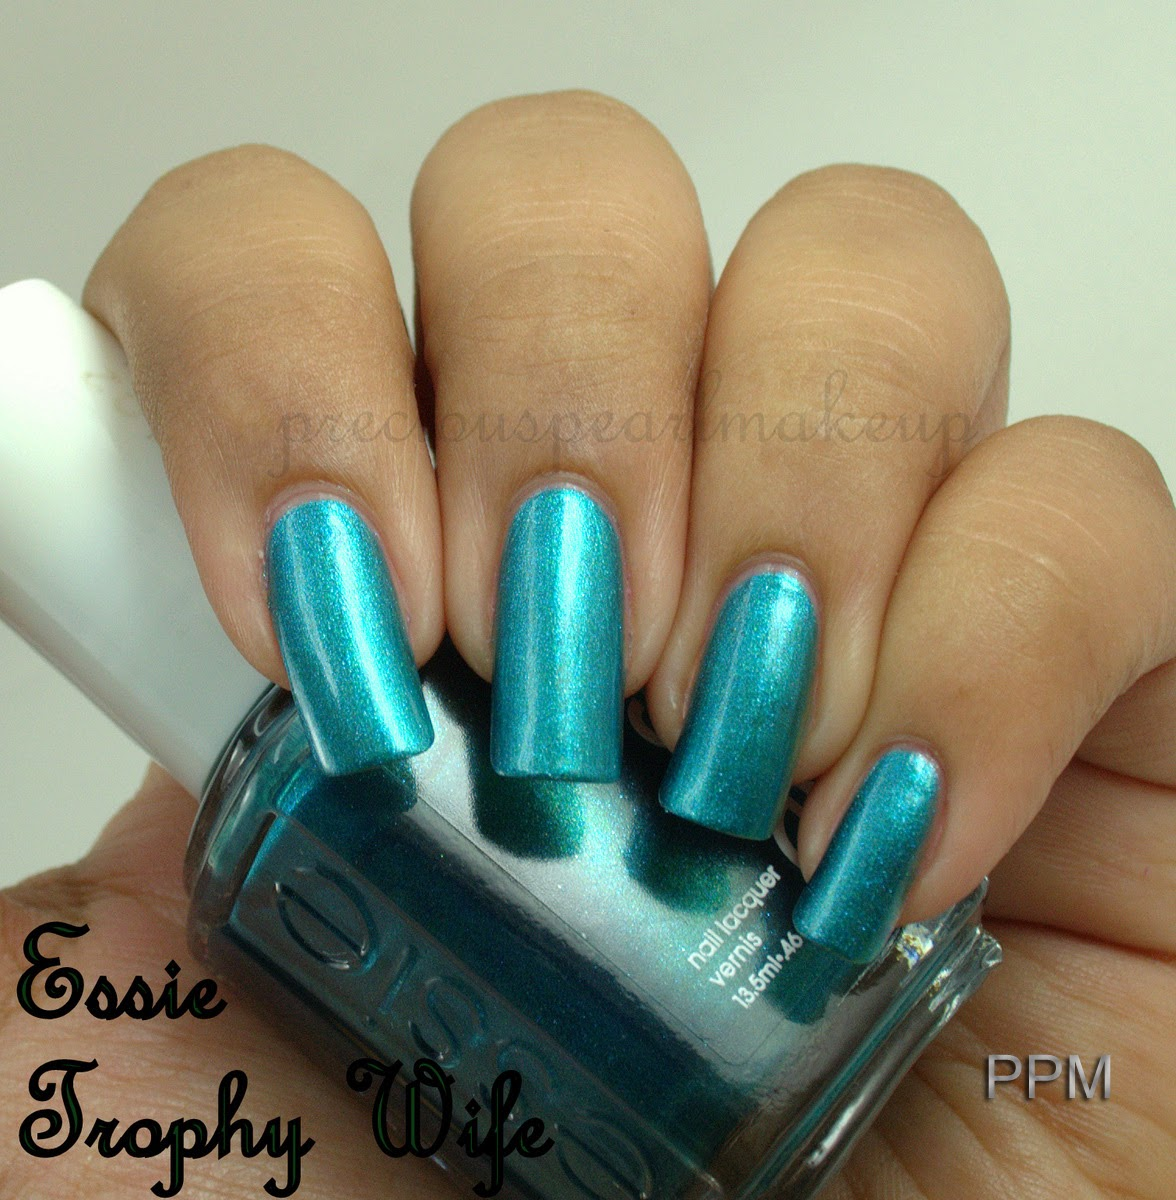 preciouspearlmakeup: Essie Nail Lacquer Trophy Wife